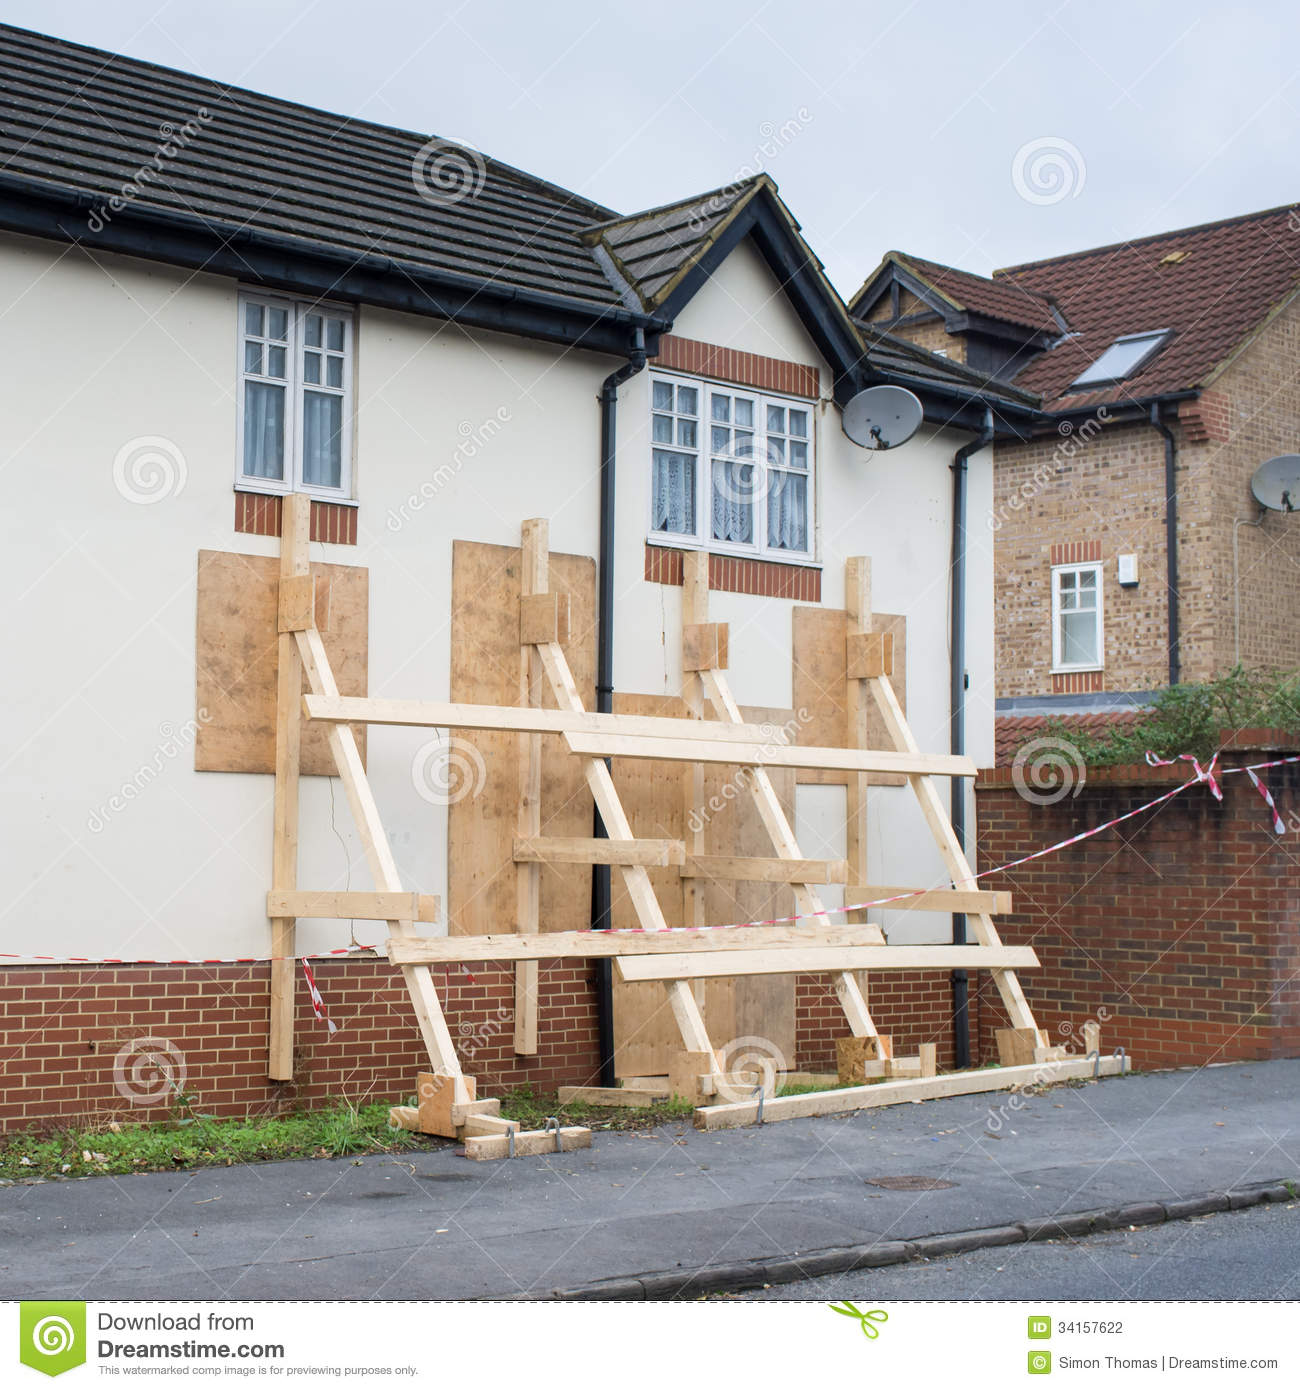 Wooden Scaffolding Stock Photography Image 34157622